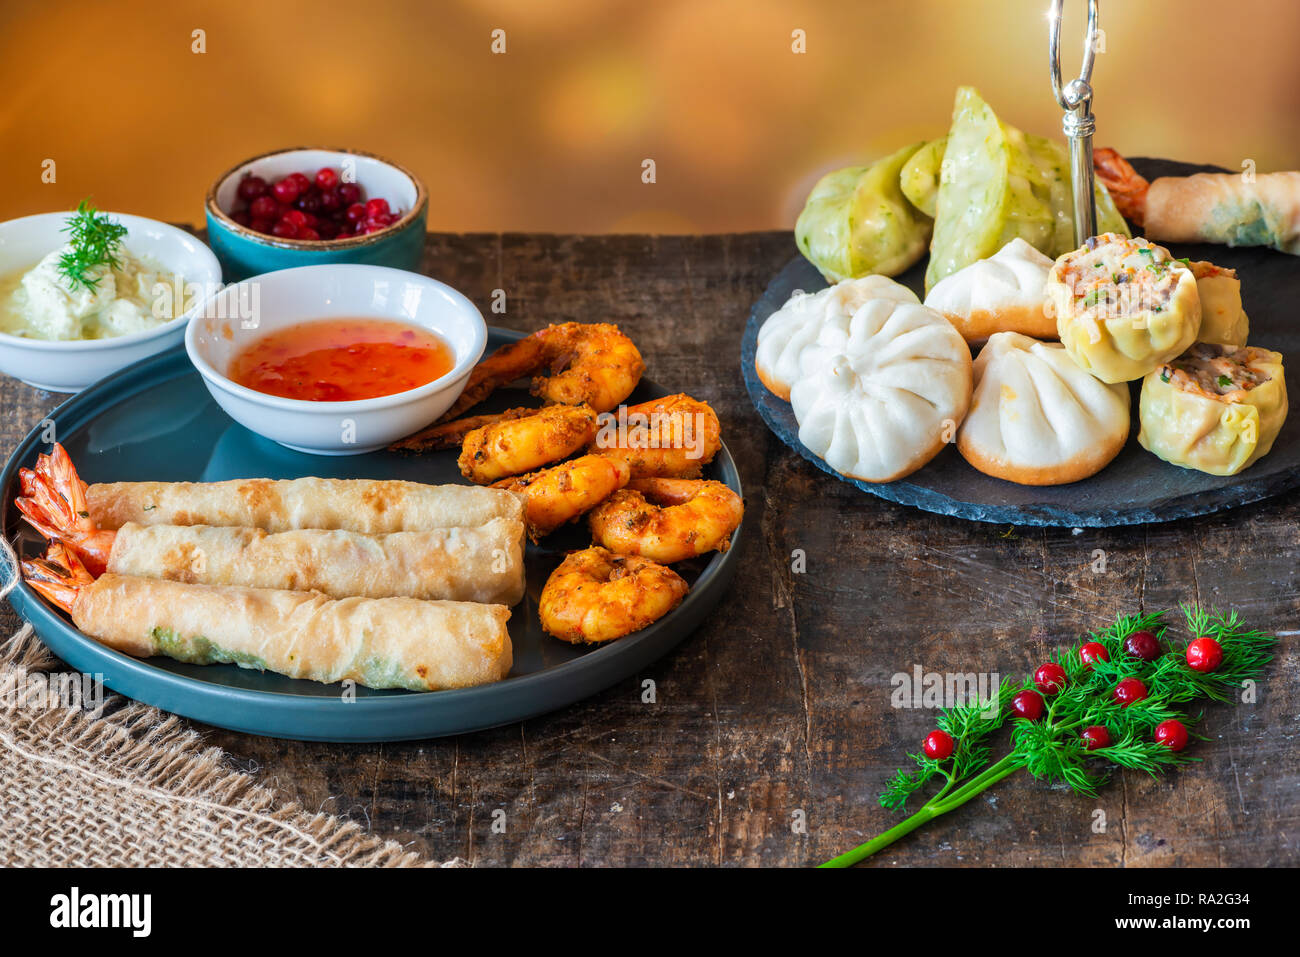 Giant king prawns and selection of mini Chinese dumplings with sweet chili and yogurt dipping sauces. Party food idea. Stock Photo